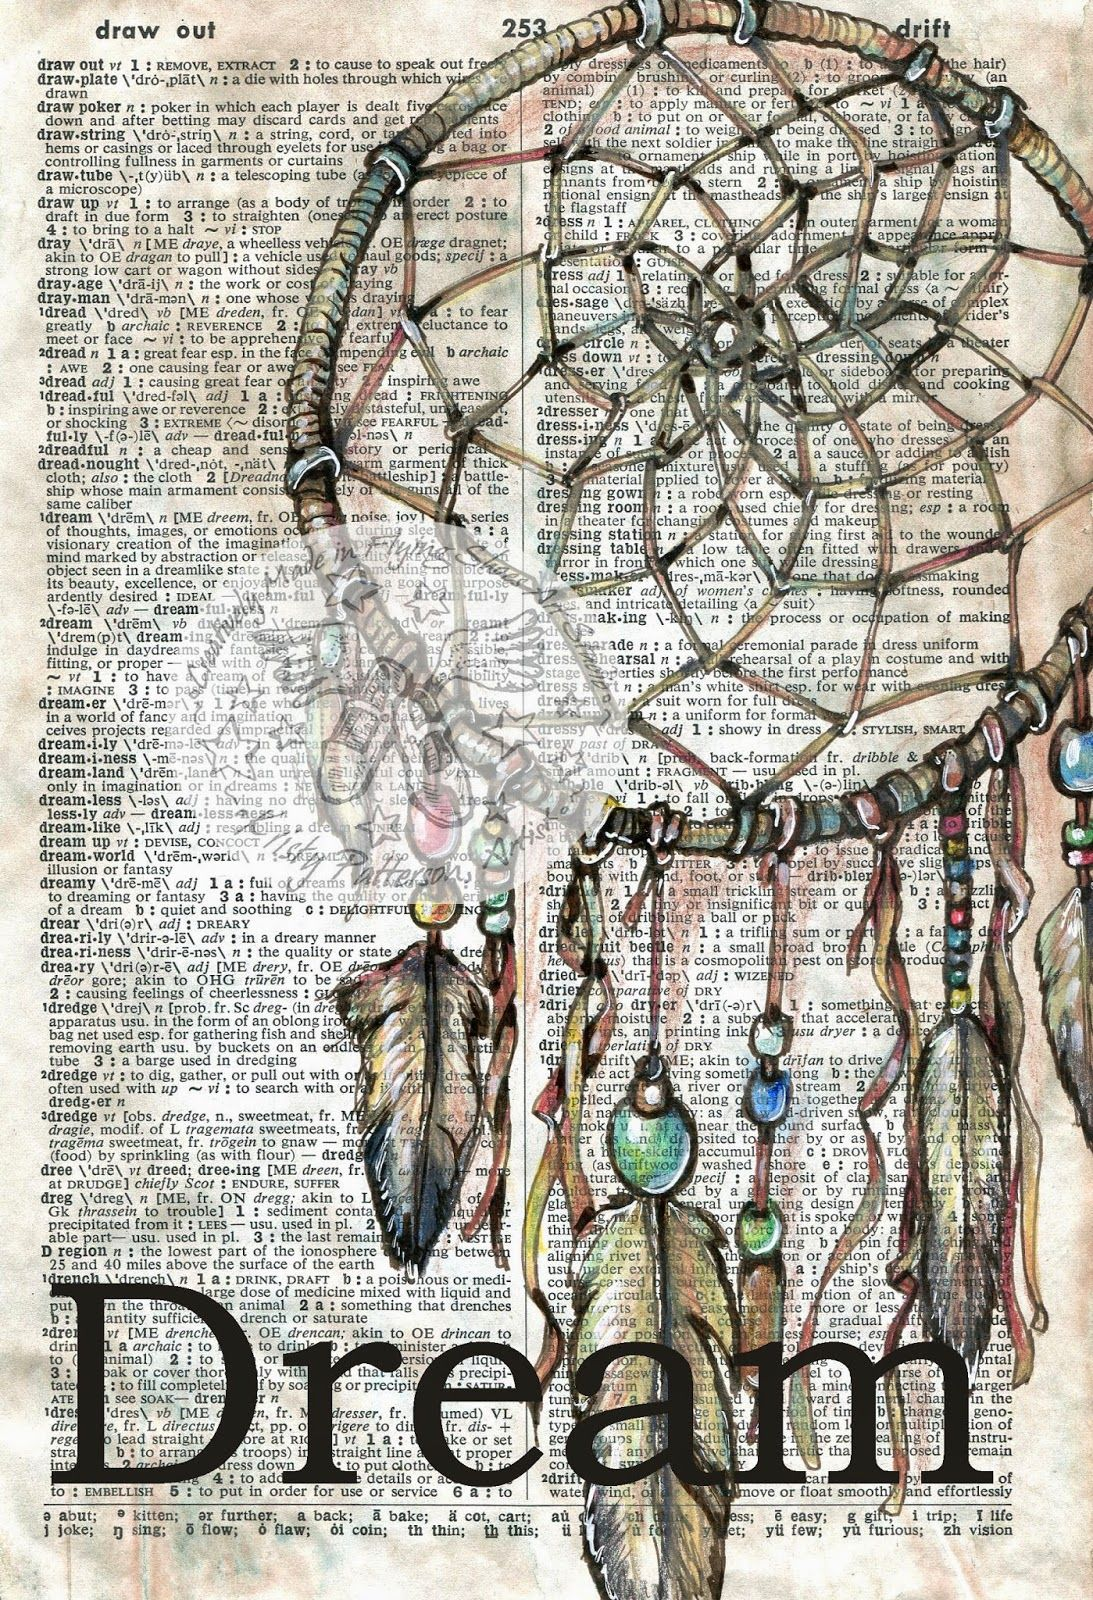 Dreamcatcher Mixed Media Drawing On Collegiate Dictionary Page